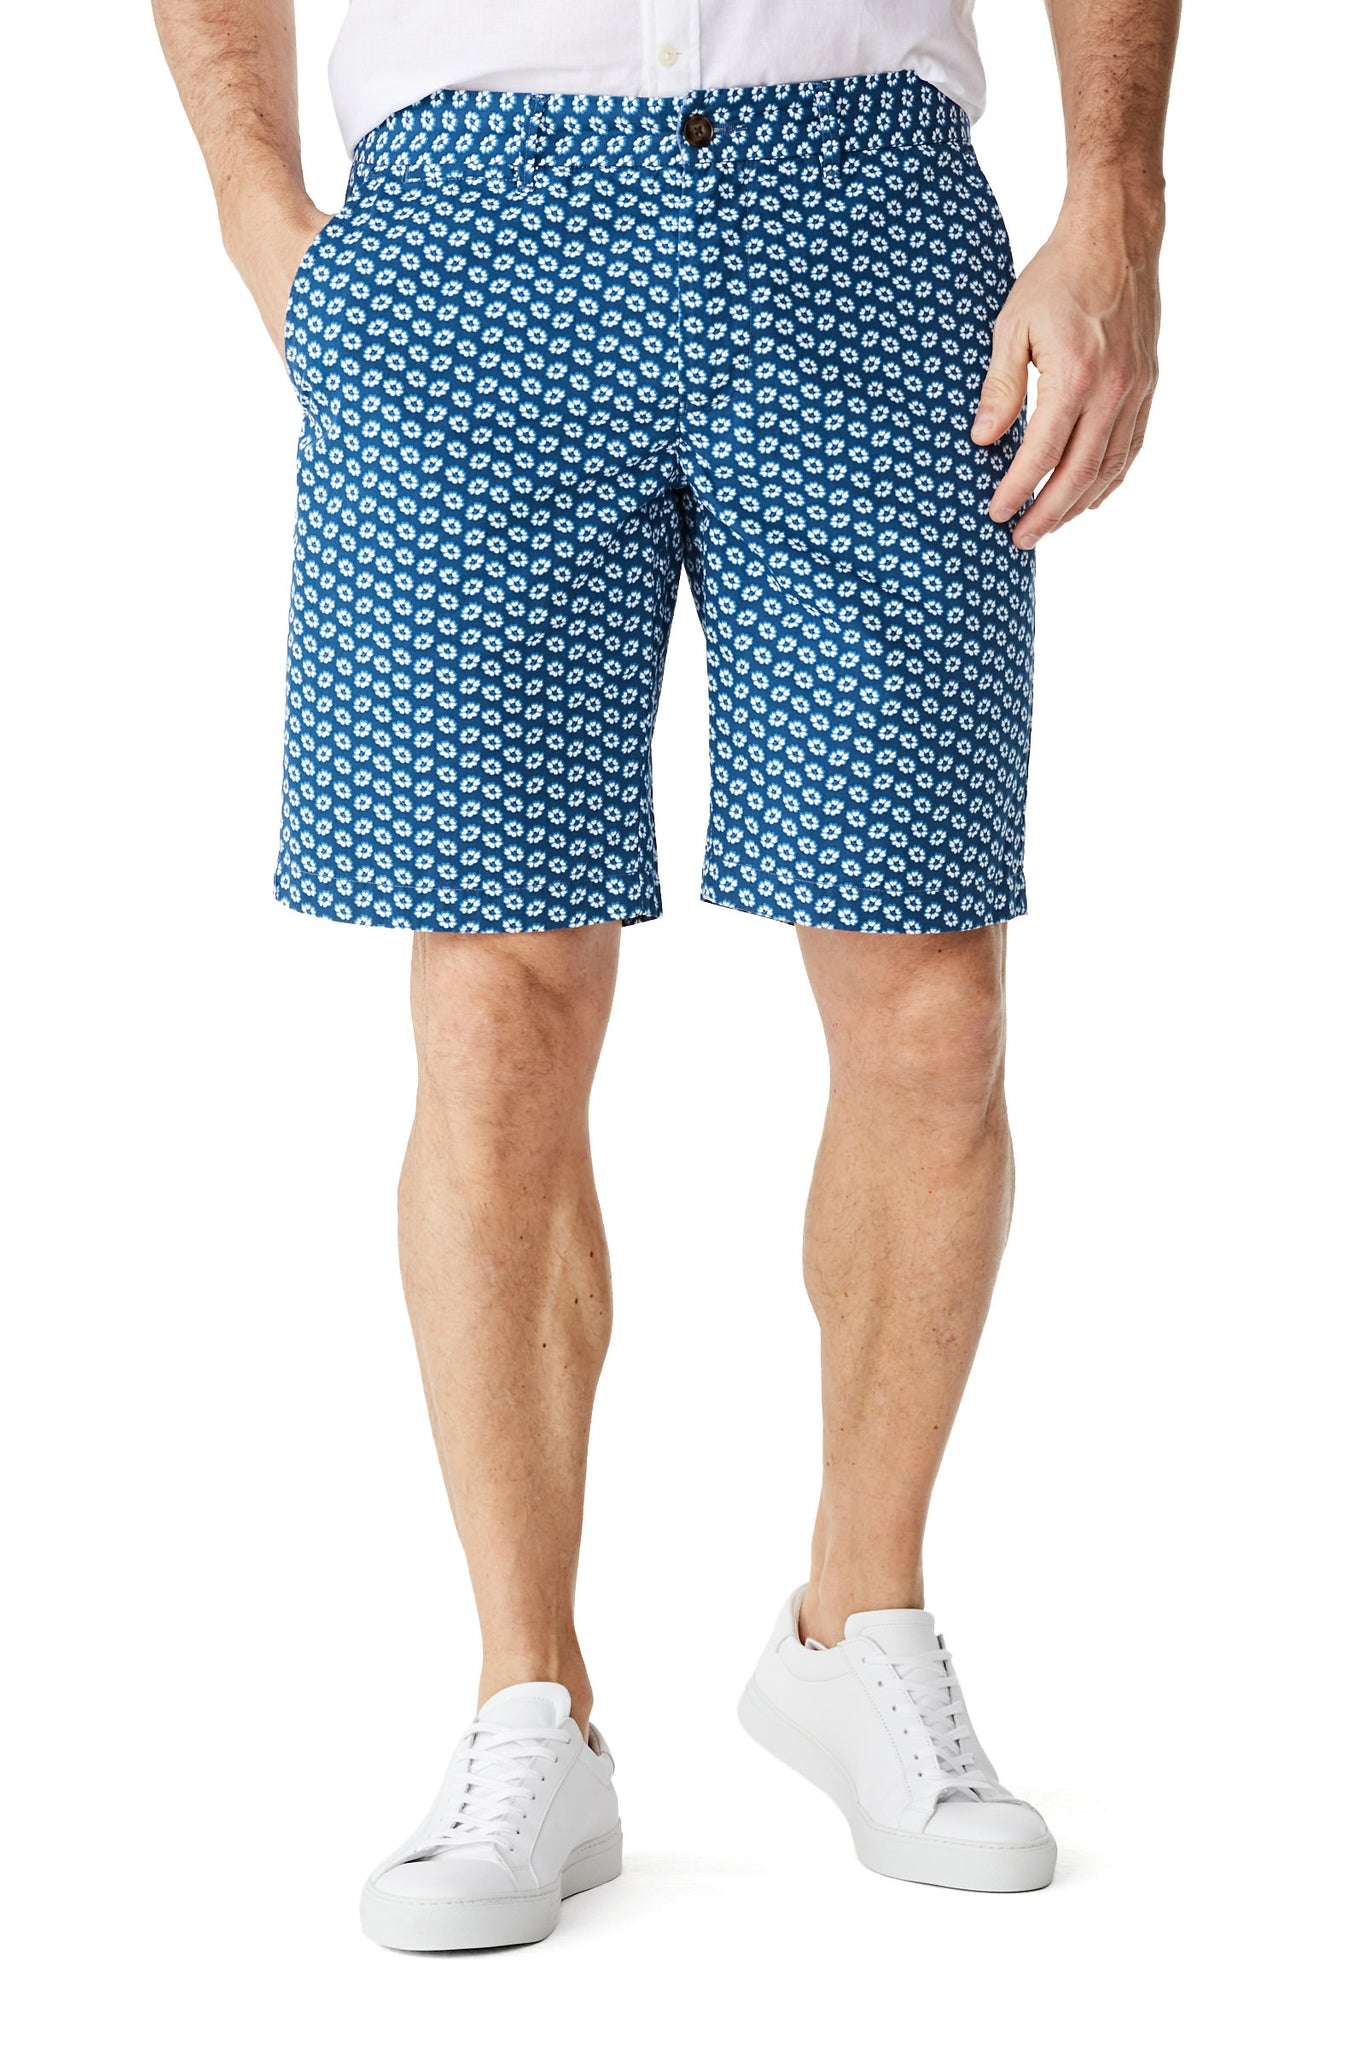 McG Regular fit shorts with floral print